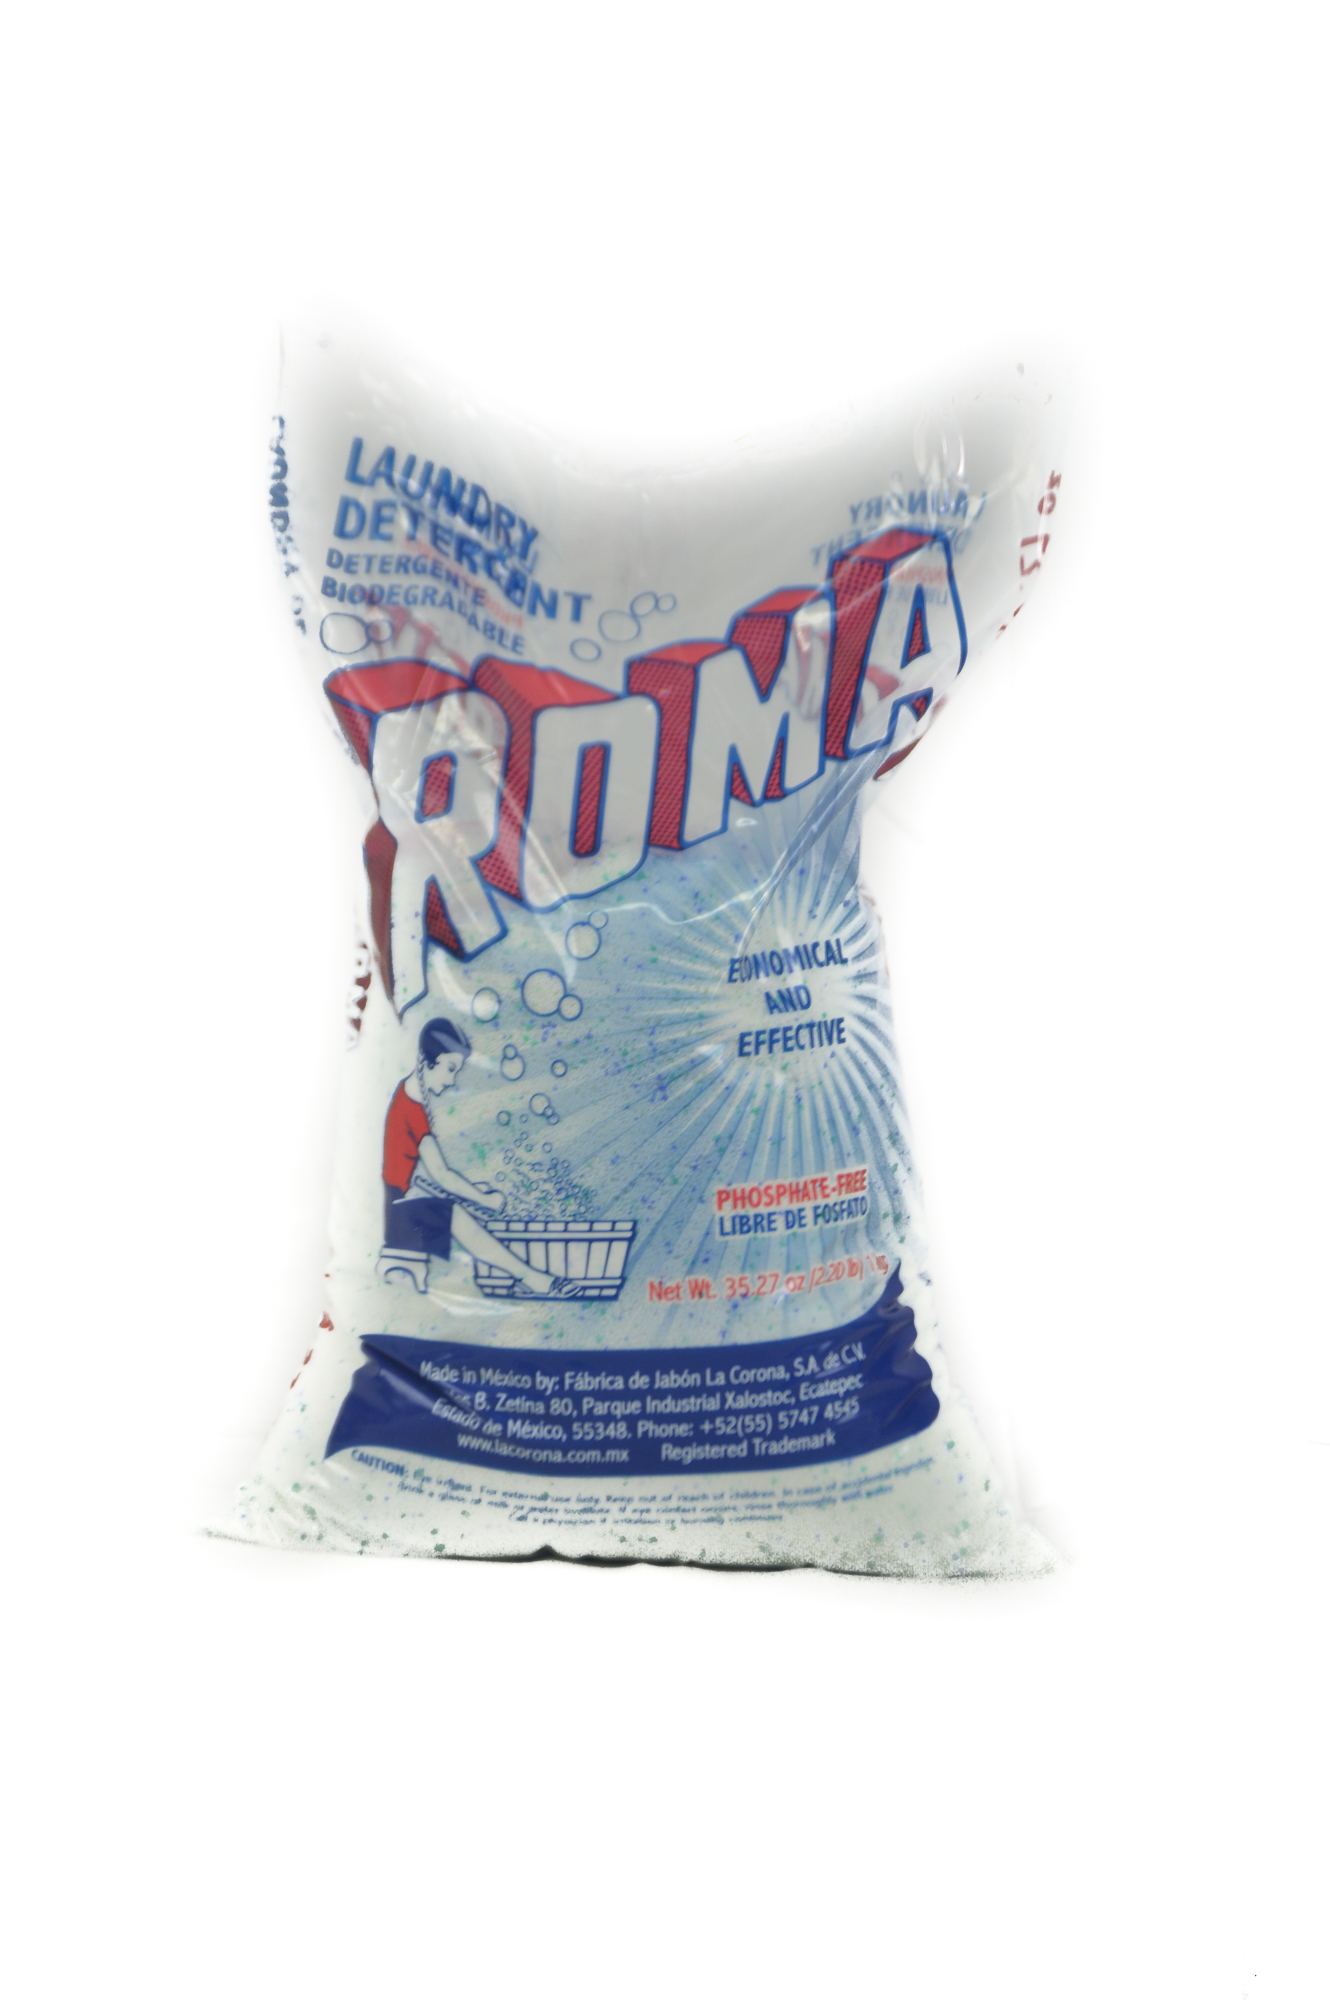 Roma Powder Laundry detergent  35 oz